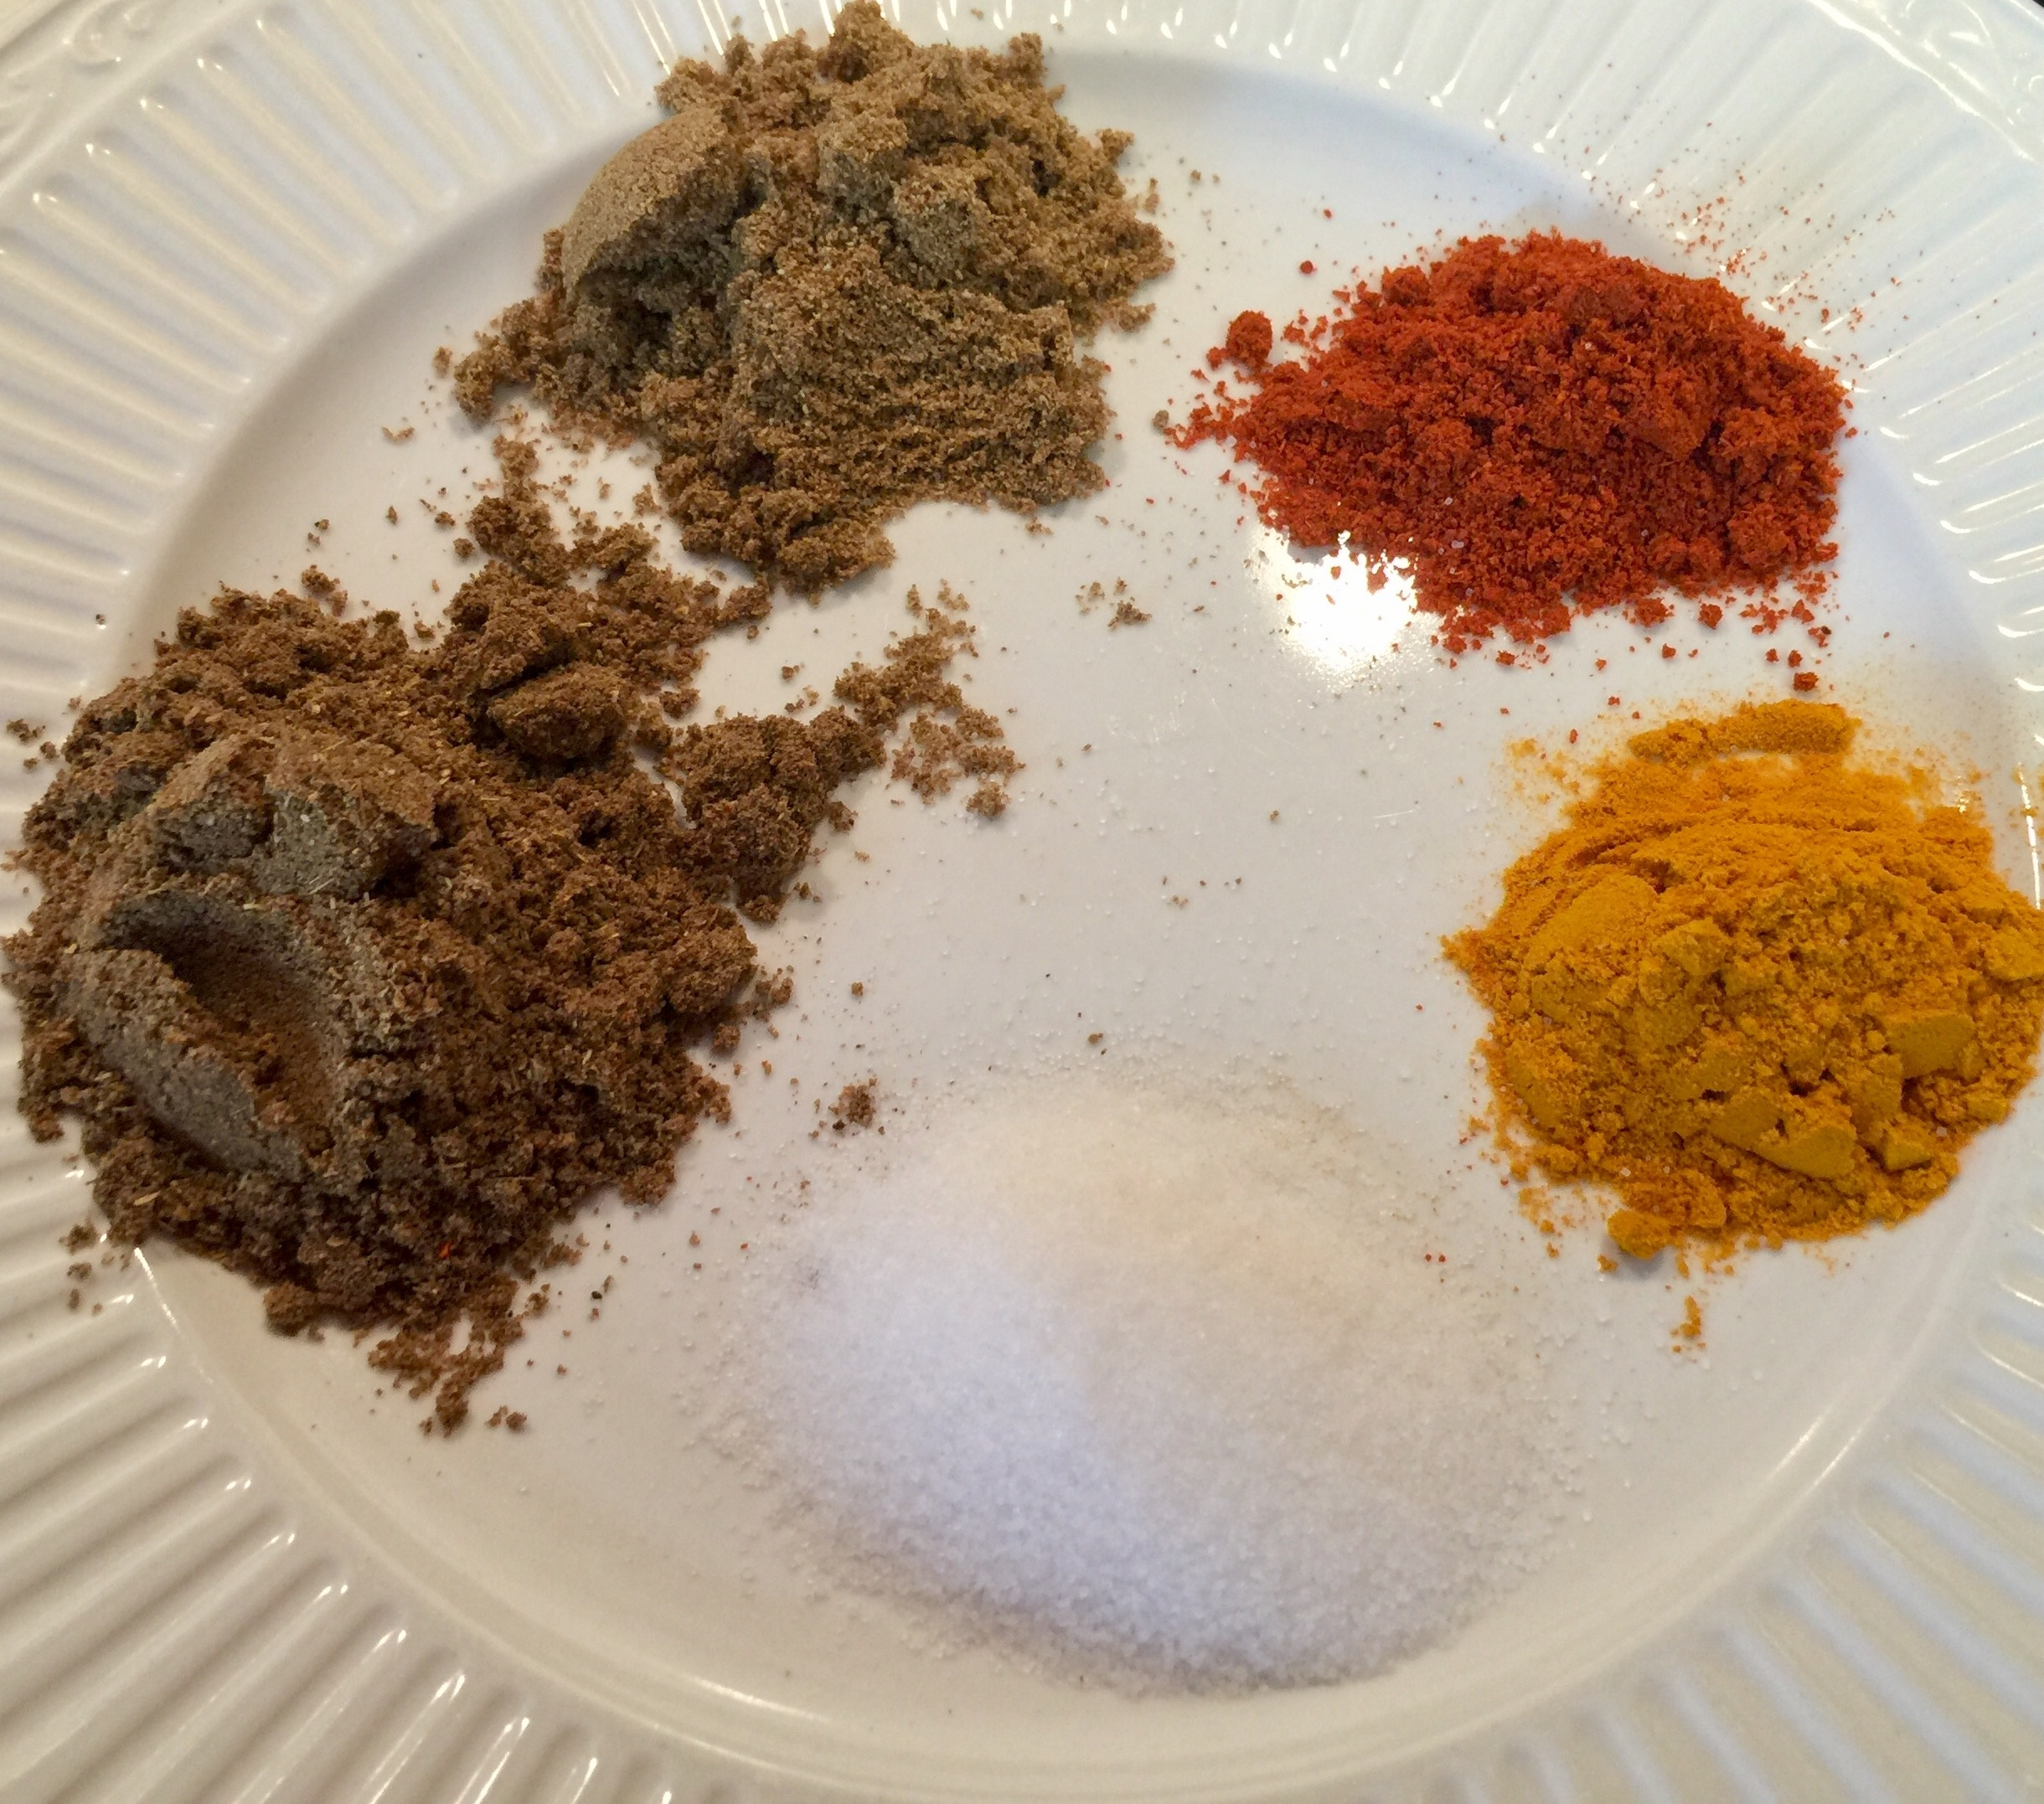 It wouldn't be Indian cuisine without excellent spices!